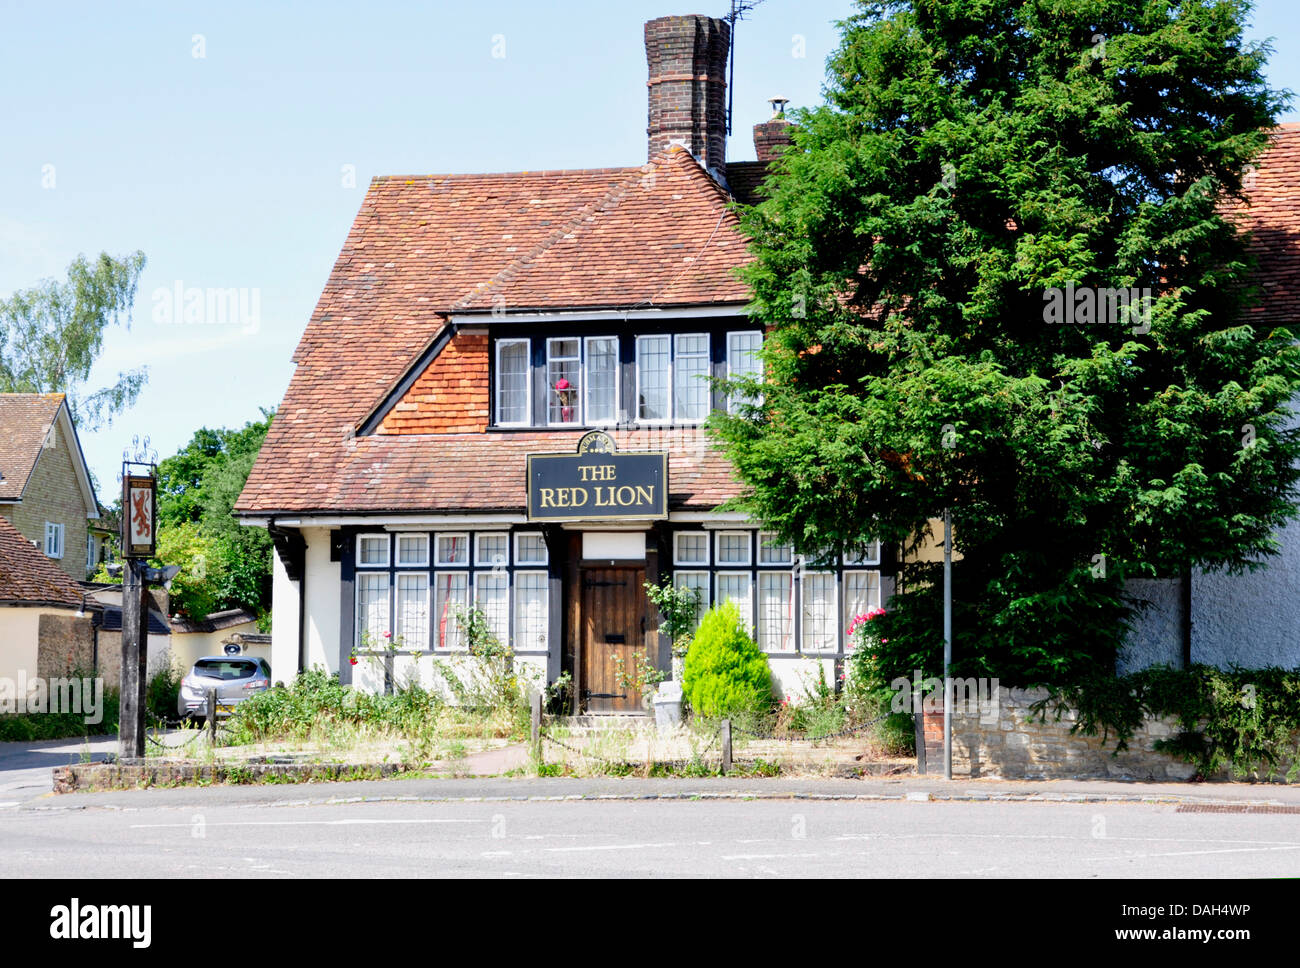 Bucks - Haddenham - a village pub - closed down - weeds in the garden - overgrown - sign of the times - Stock Image